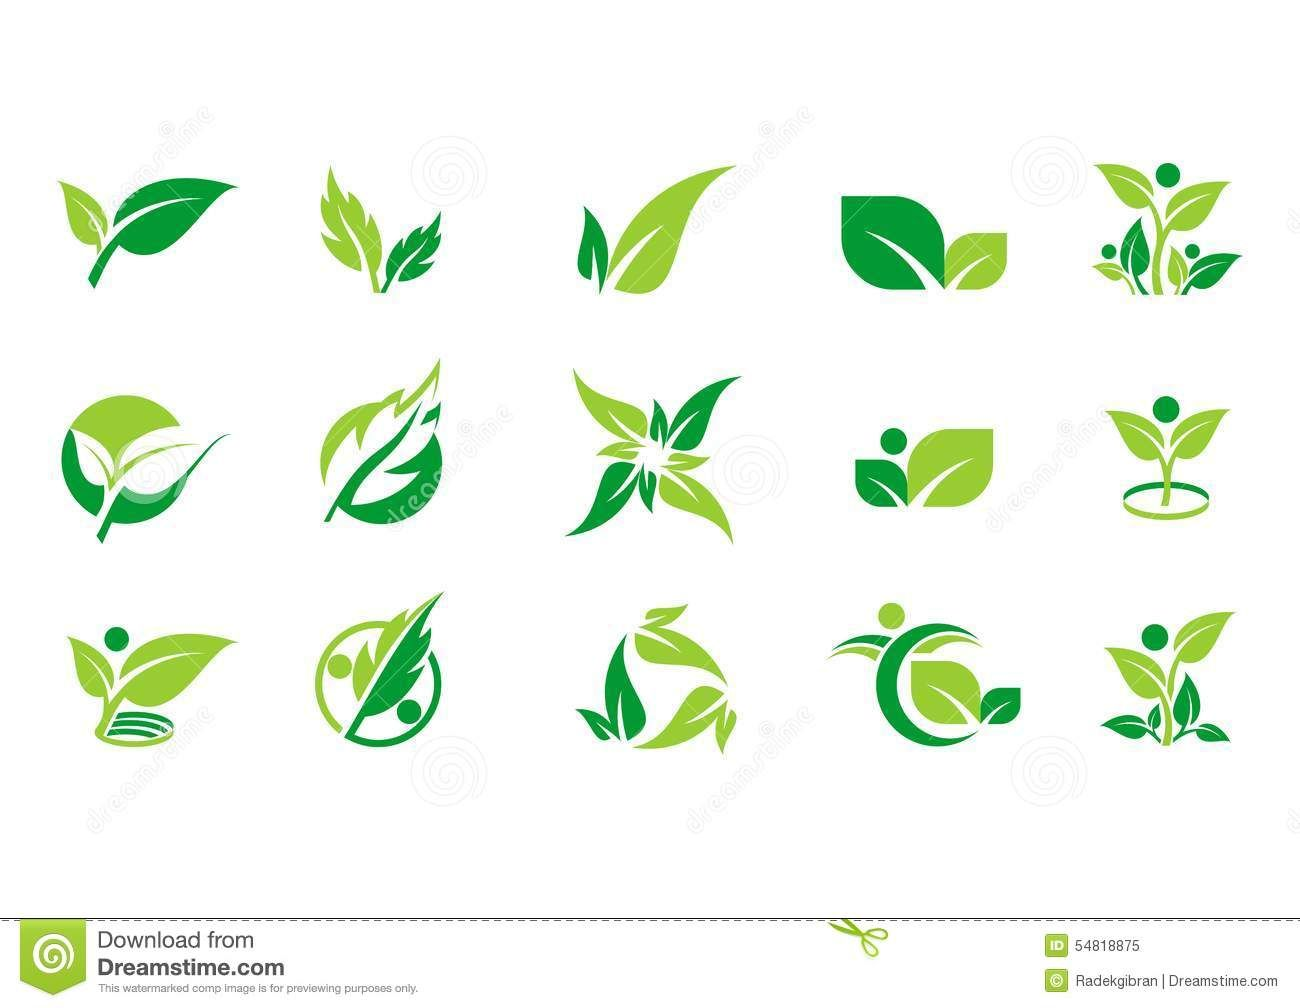 Shrub Graphic Symbols Diagram Wire 2 Lights To 1 Switch Different From E Two Wiring Wires Leaf Plant Logo Ecology People Wellness Green Leaves